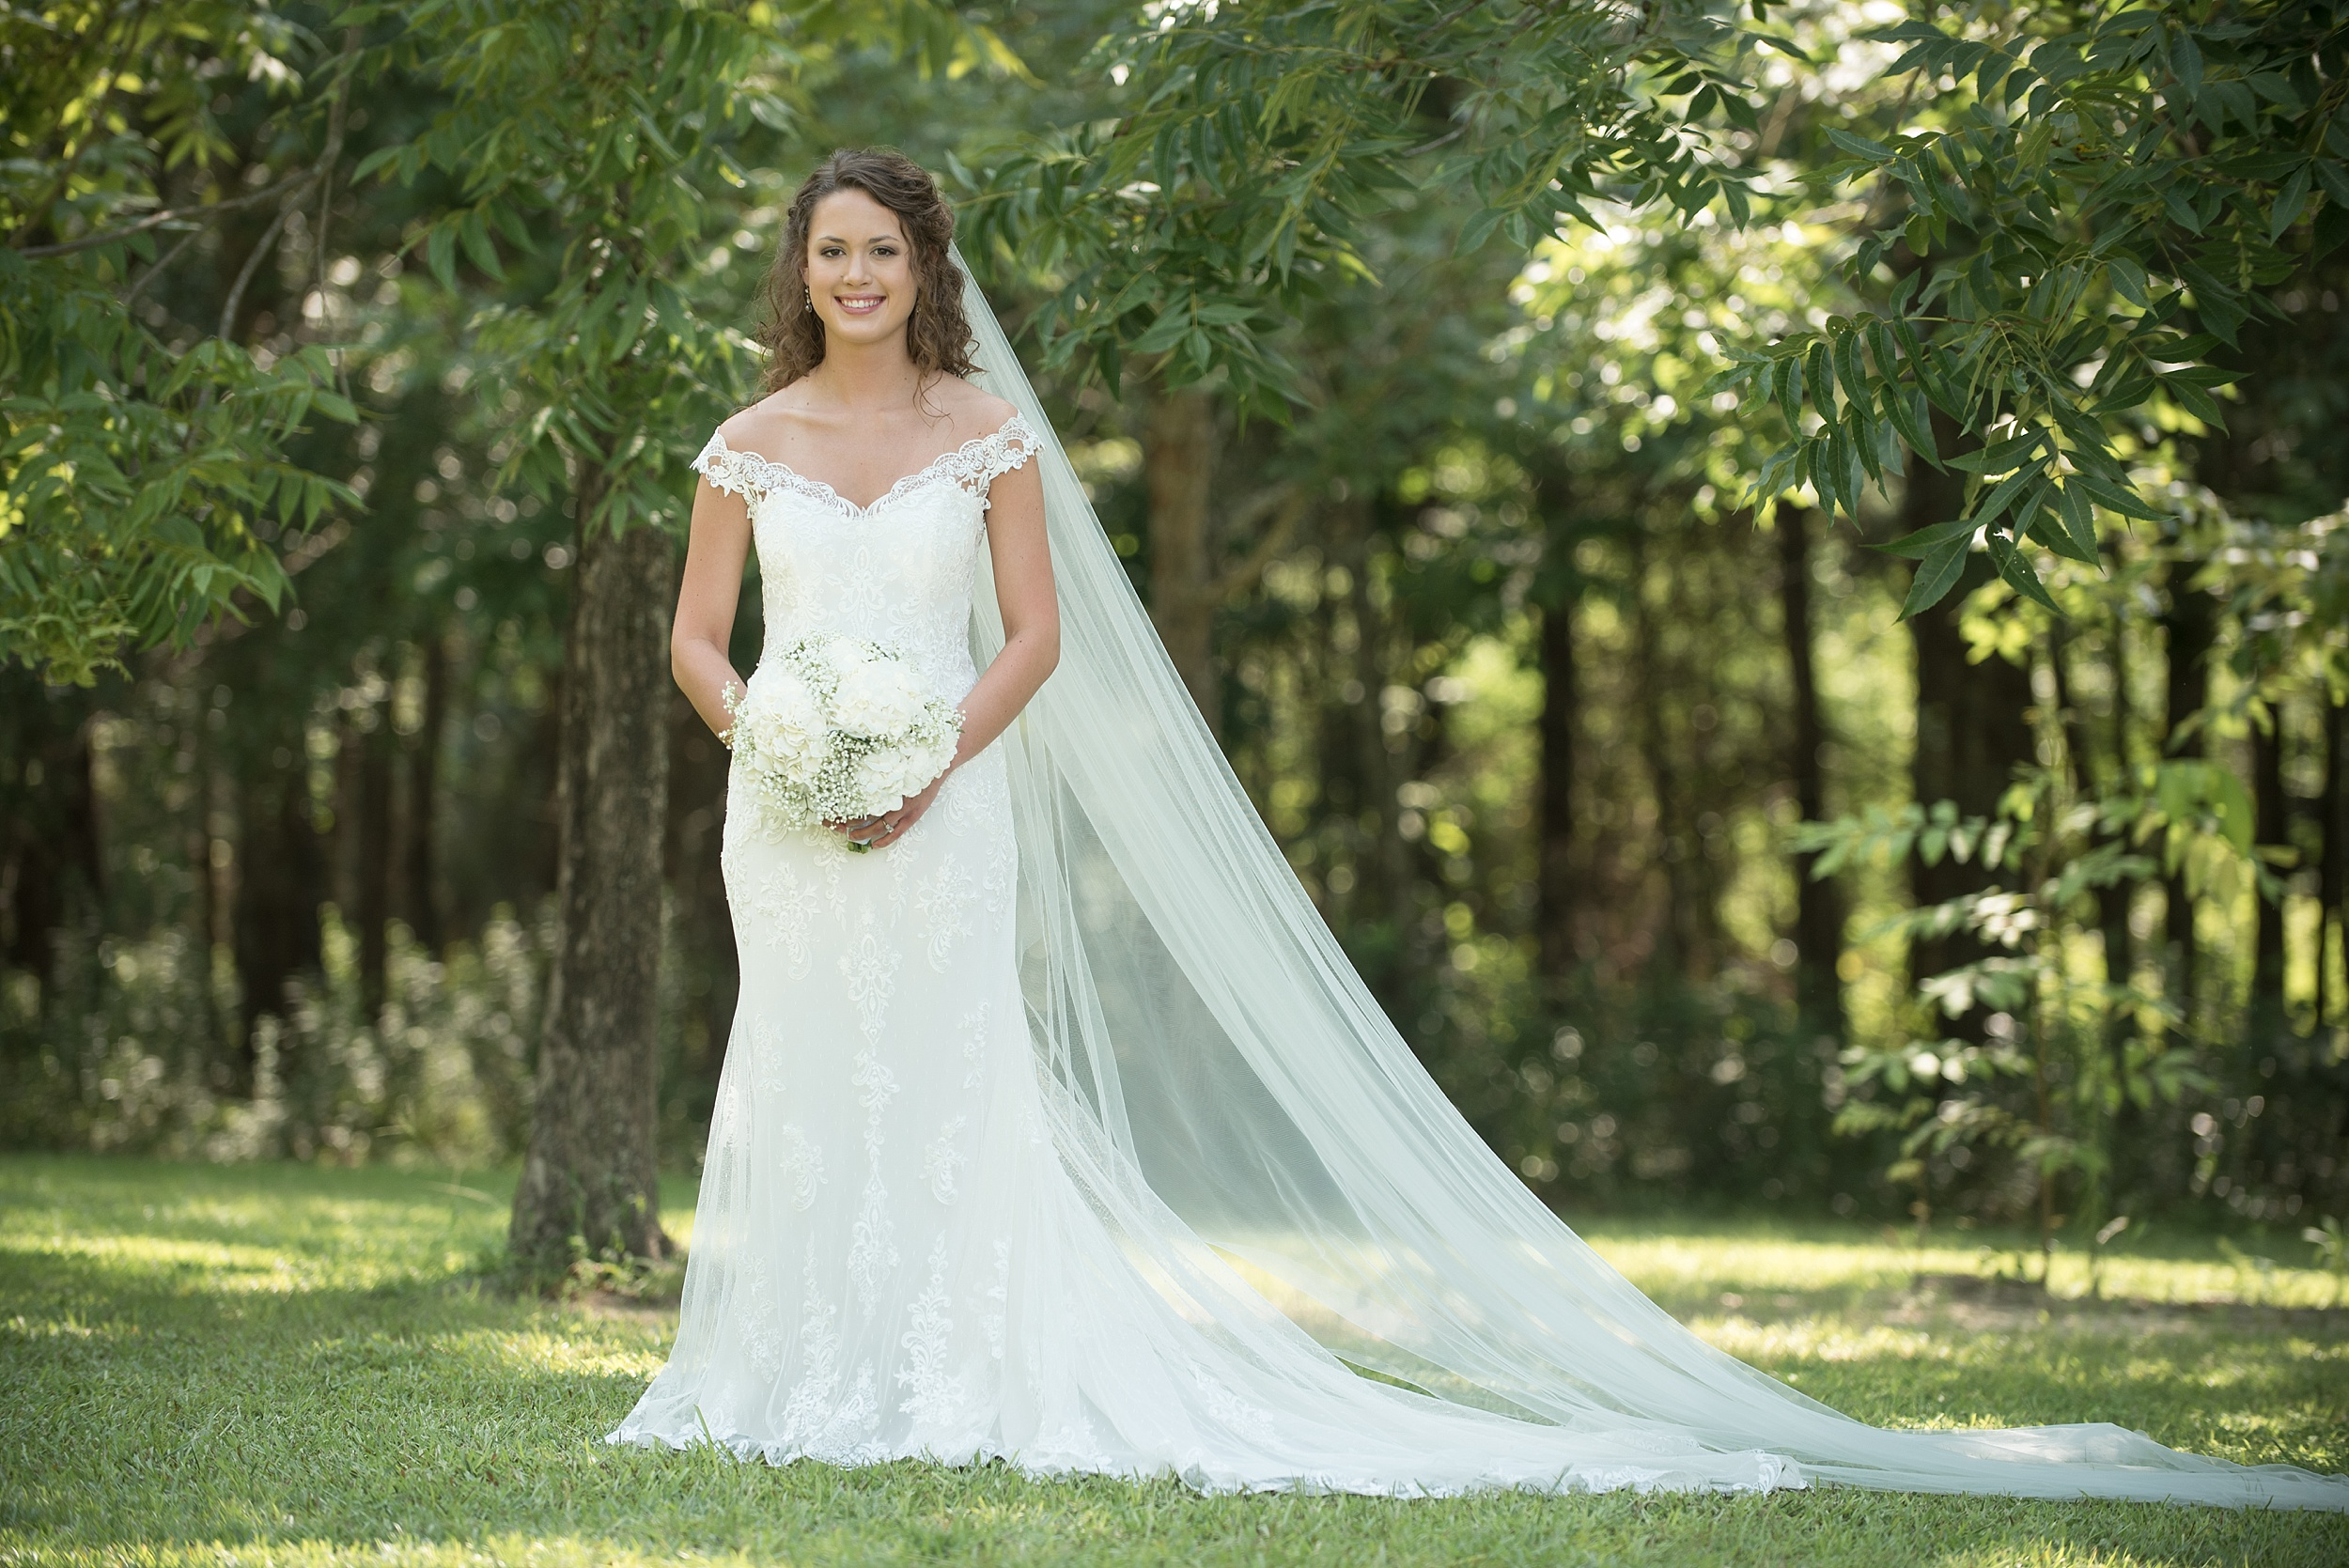 lovely bride in lace wedding dress with cathedral length veil standing underneath lush green trees on a sunny summer day